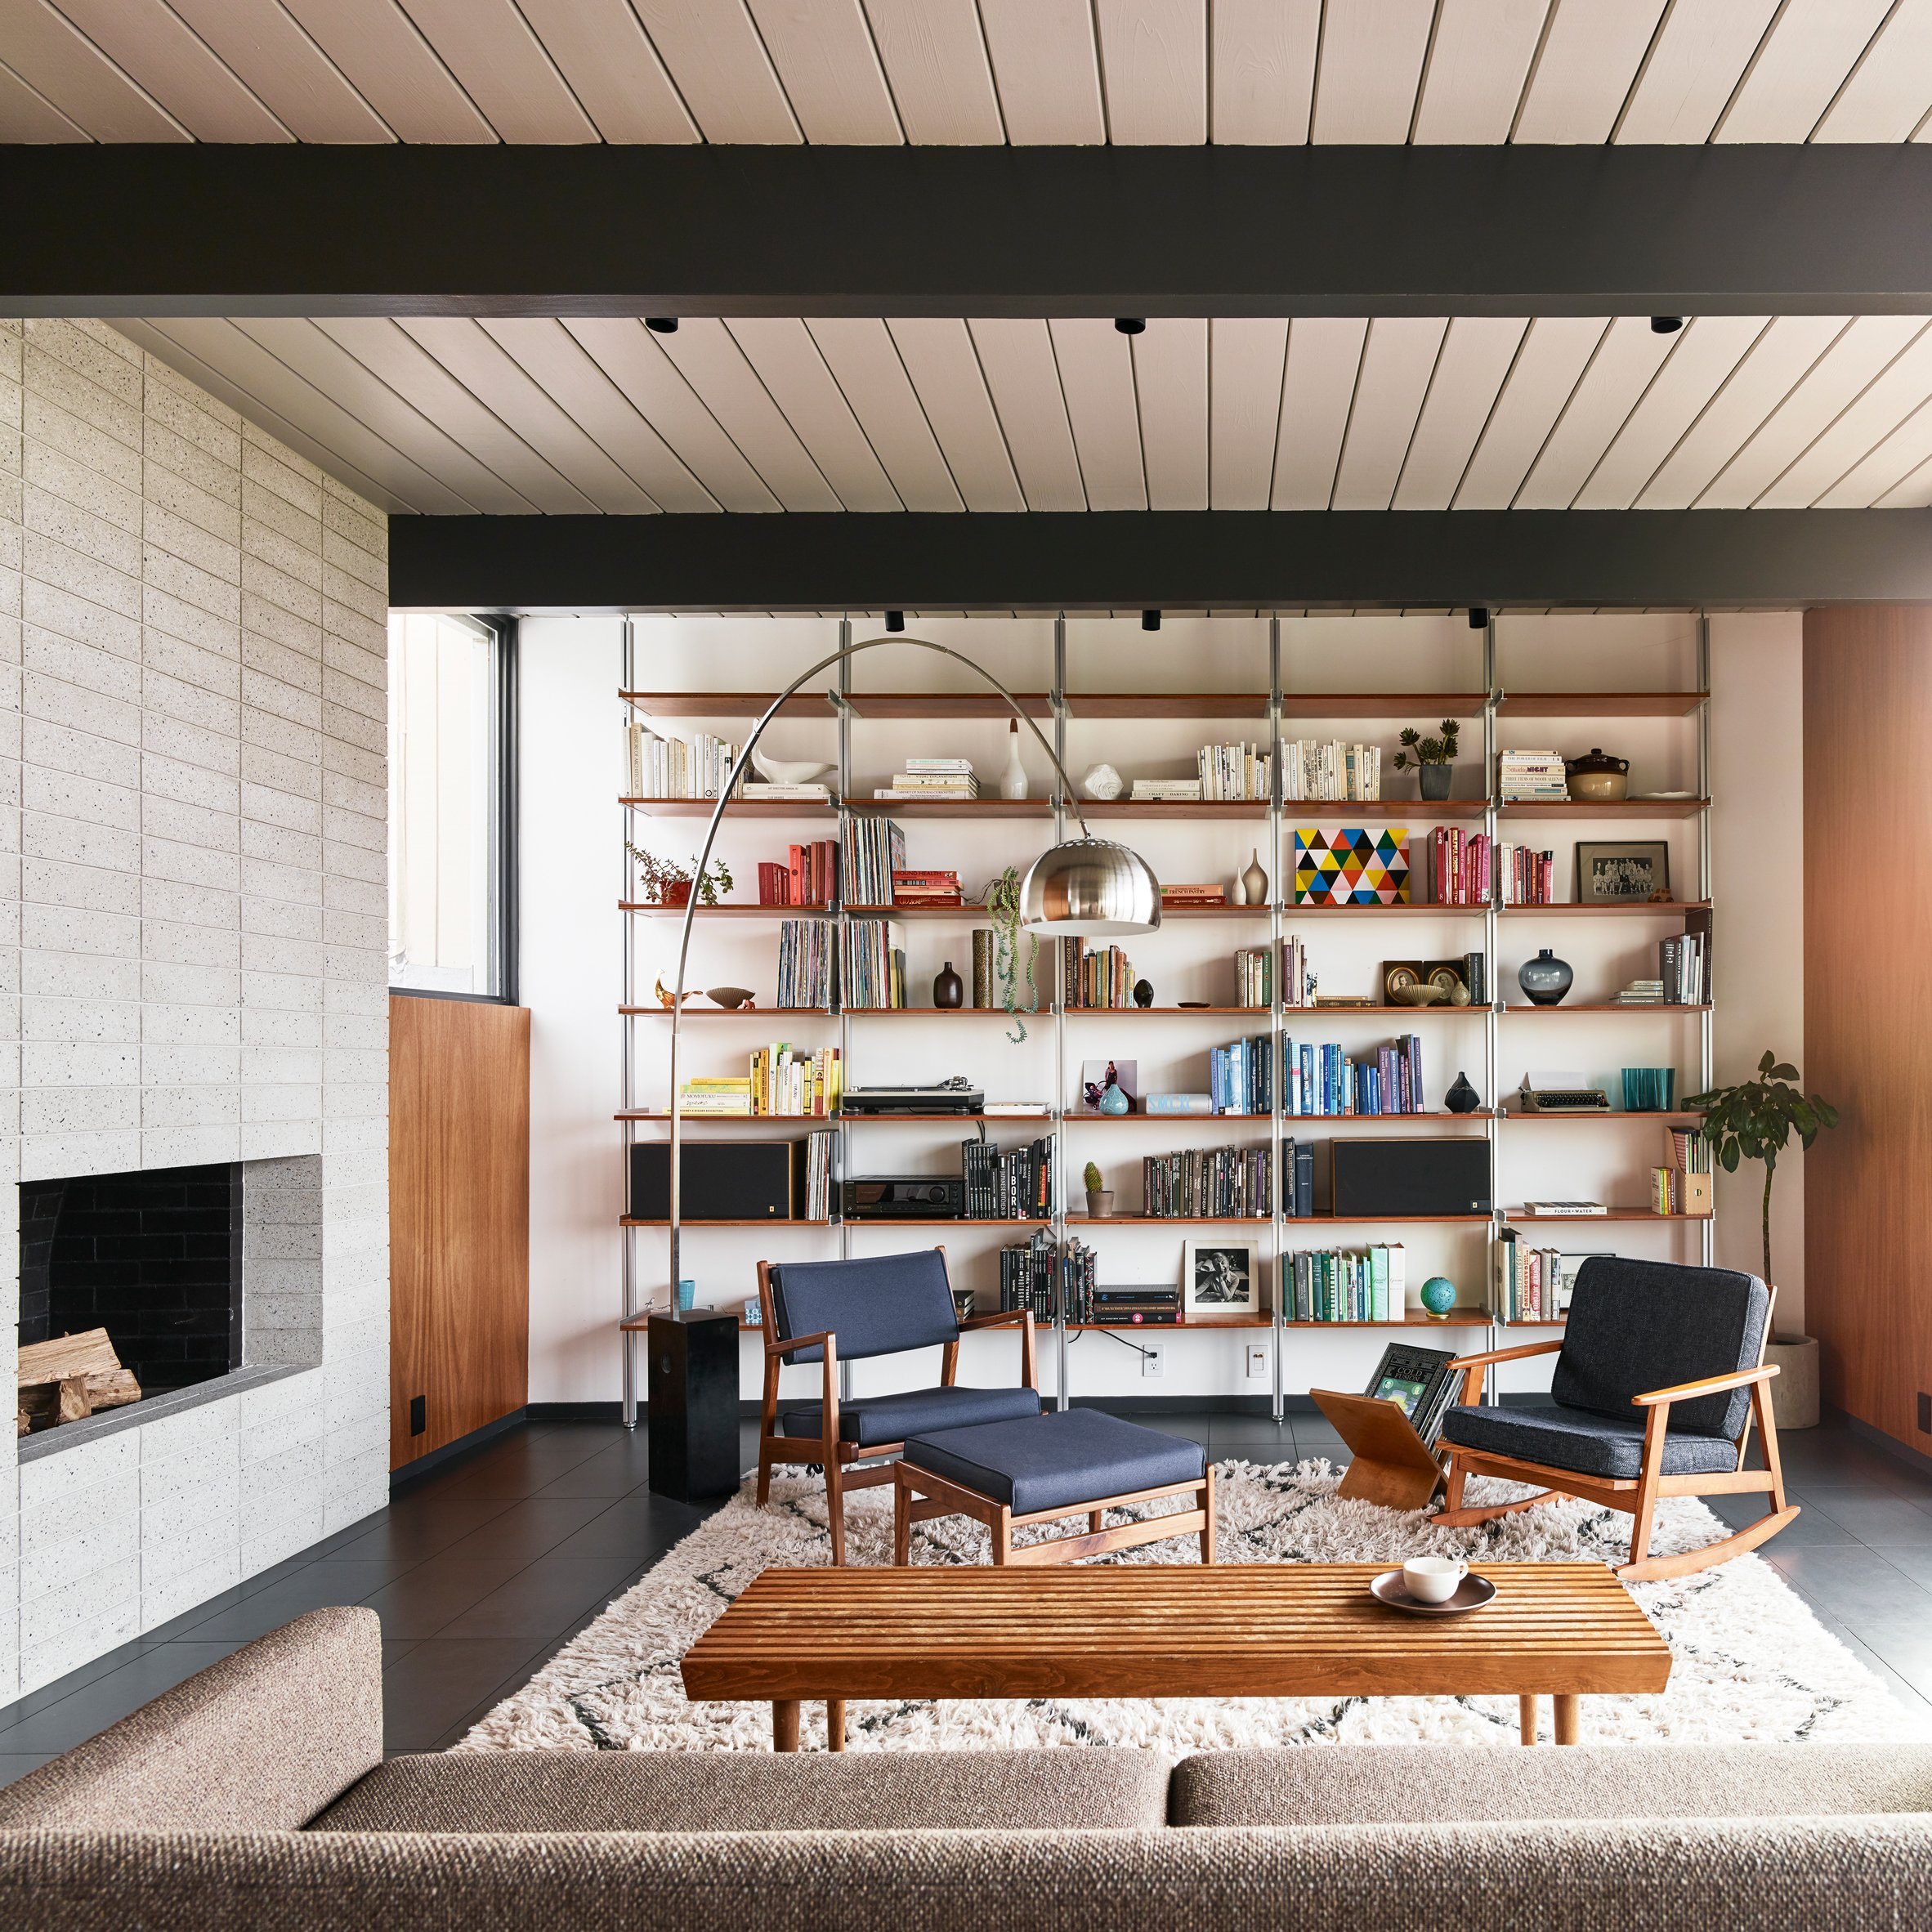 Dezeens top 10 mid century renovations of 2017